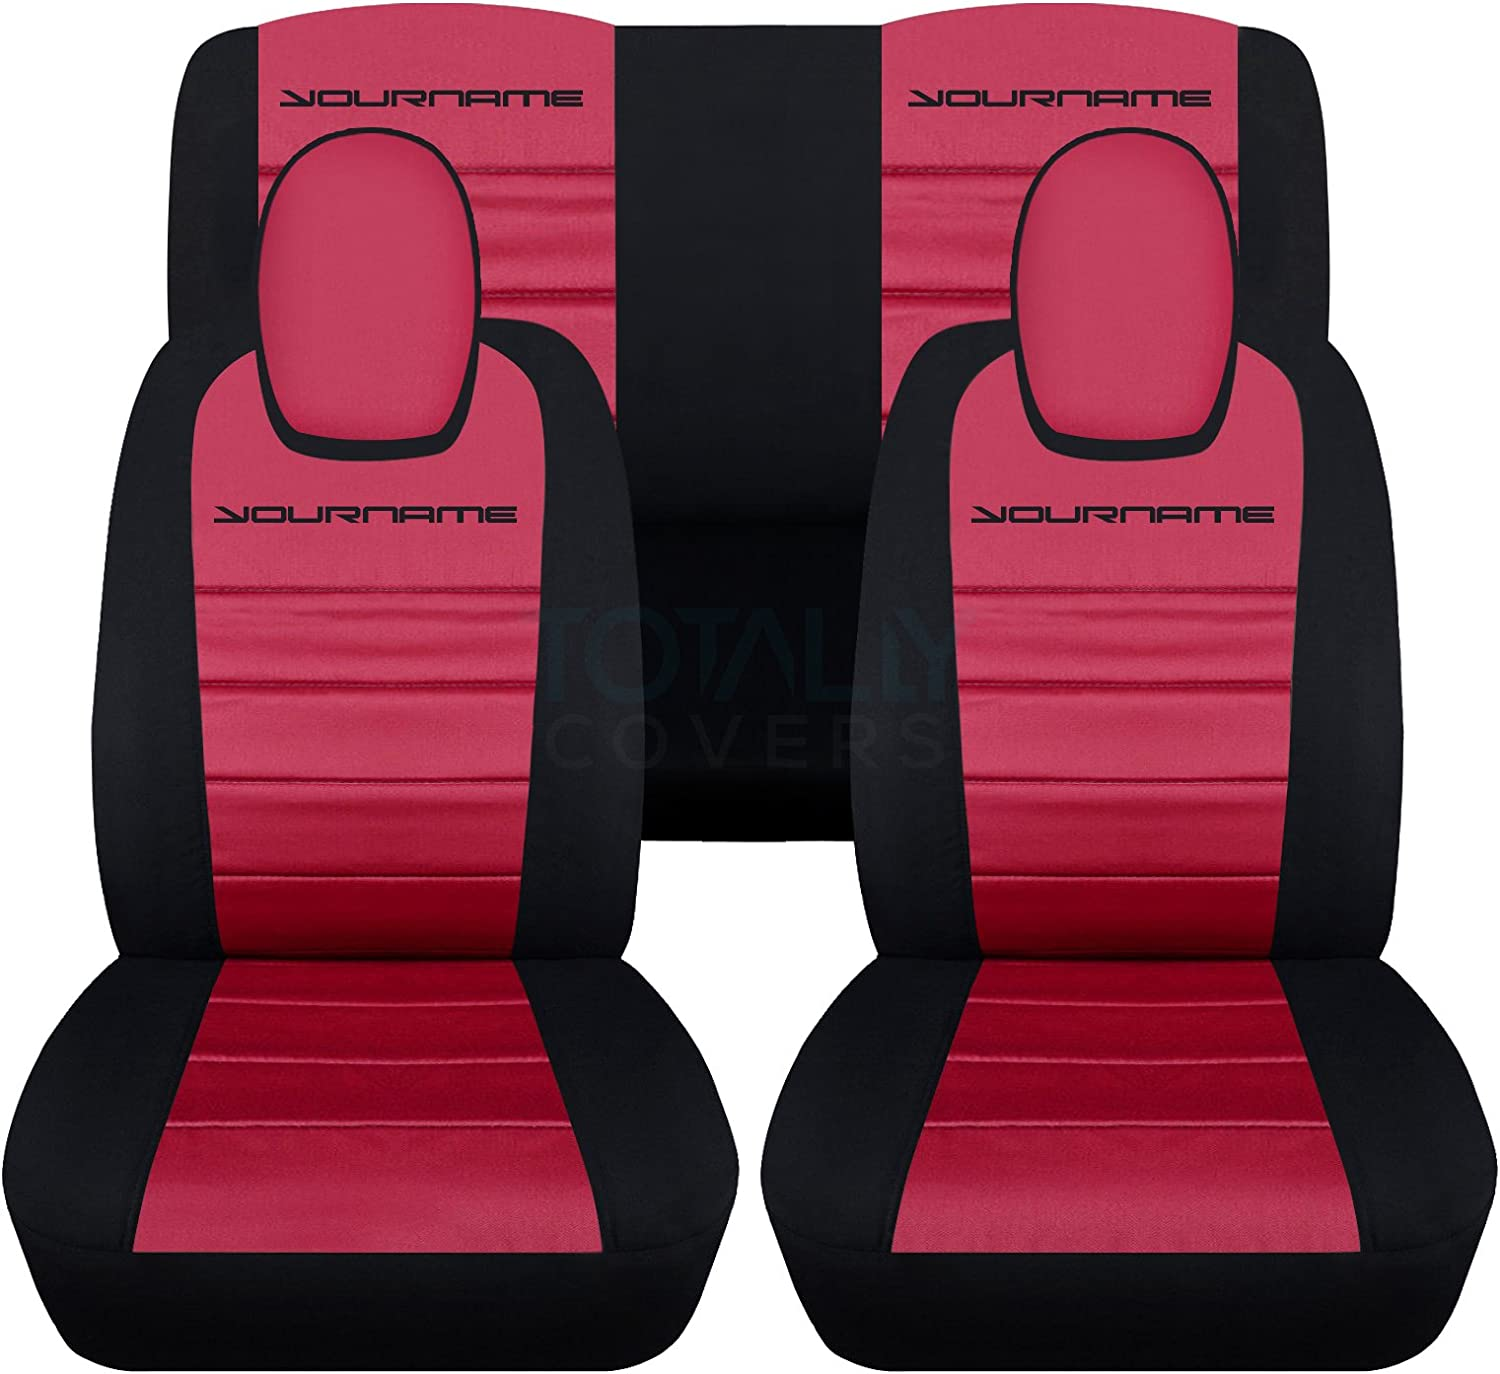 Coupe//Convertible Belt Holder 5th Generation Chevrolet Totally Covers Compatible with 2010-2015 Chevy Camaro 2-Tone Seat Covers w Your Name//Text: Black /& Blue Full Set 22 Colors